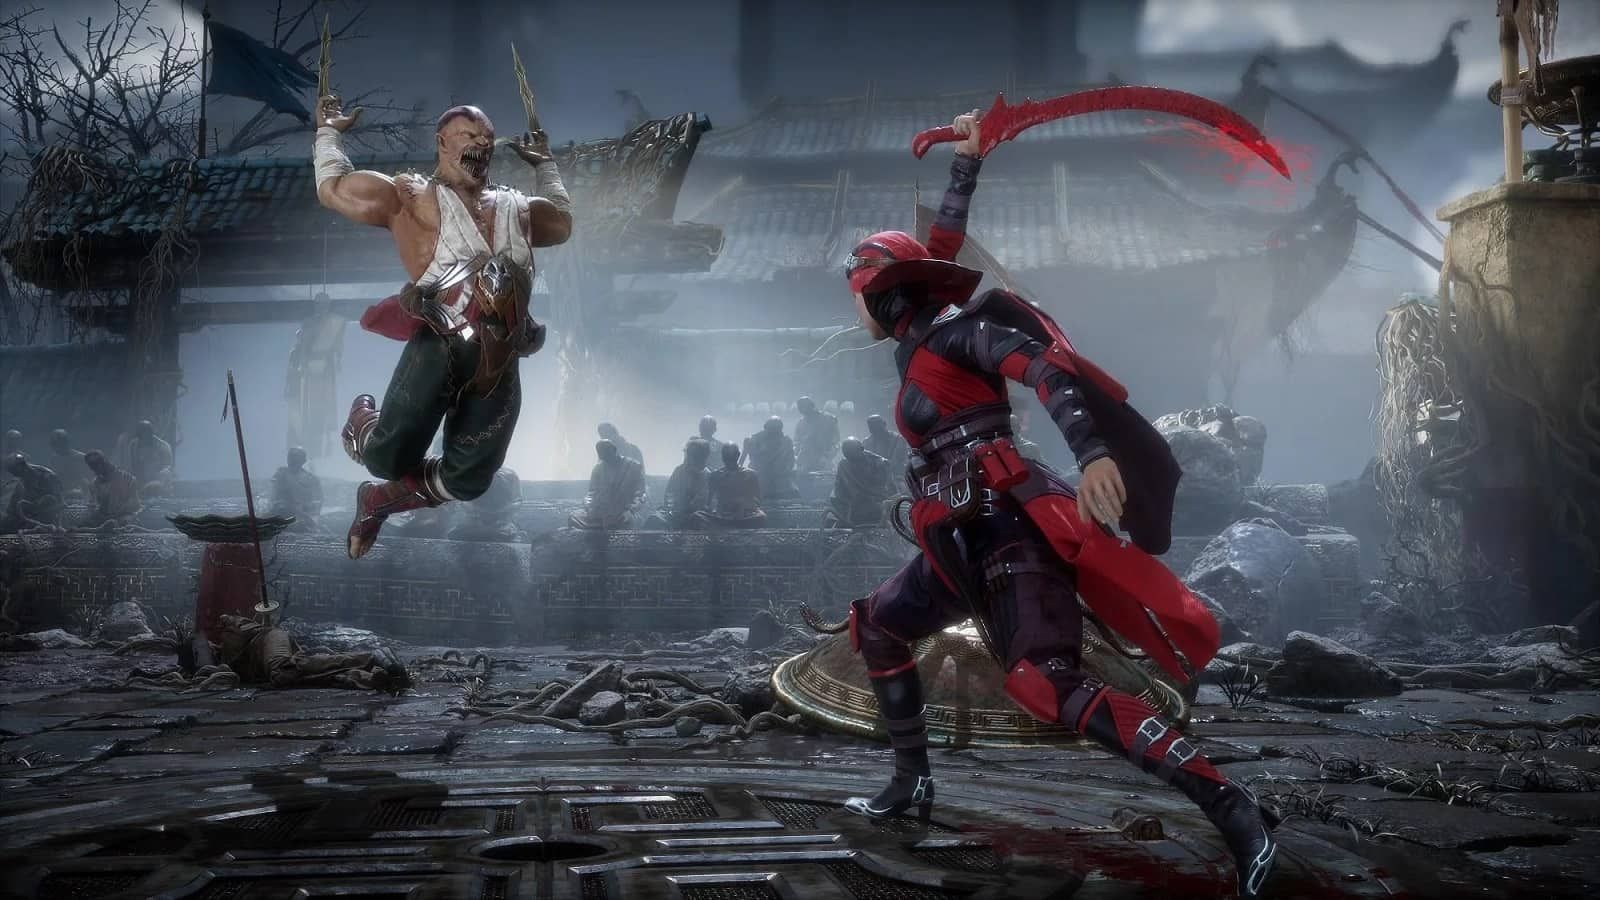 Mortal Kombat 11 just hit shelves and there's a leaked